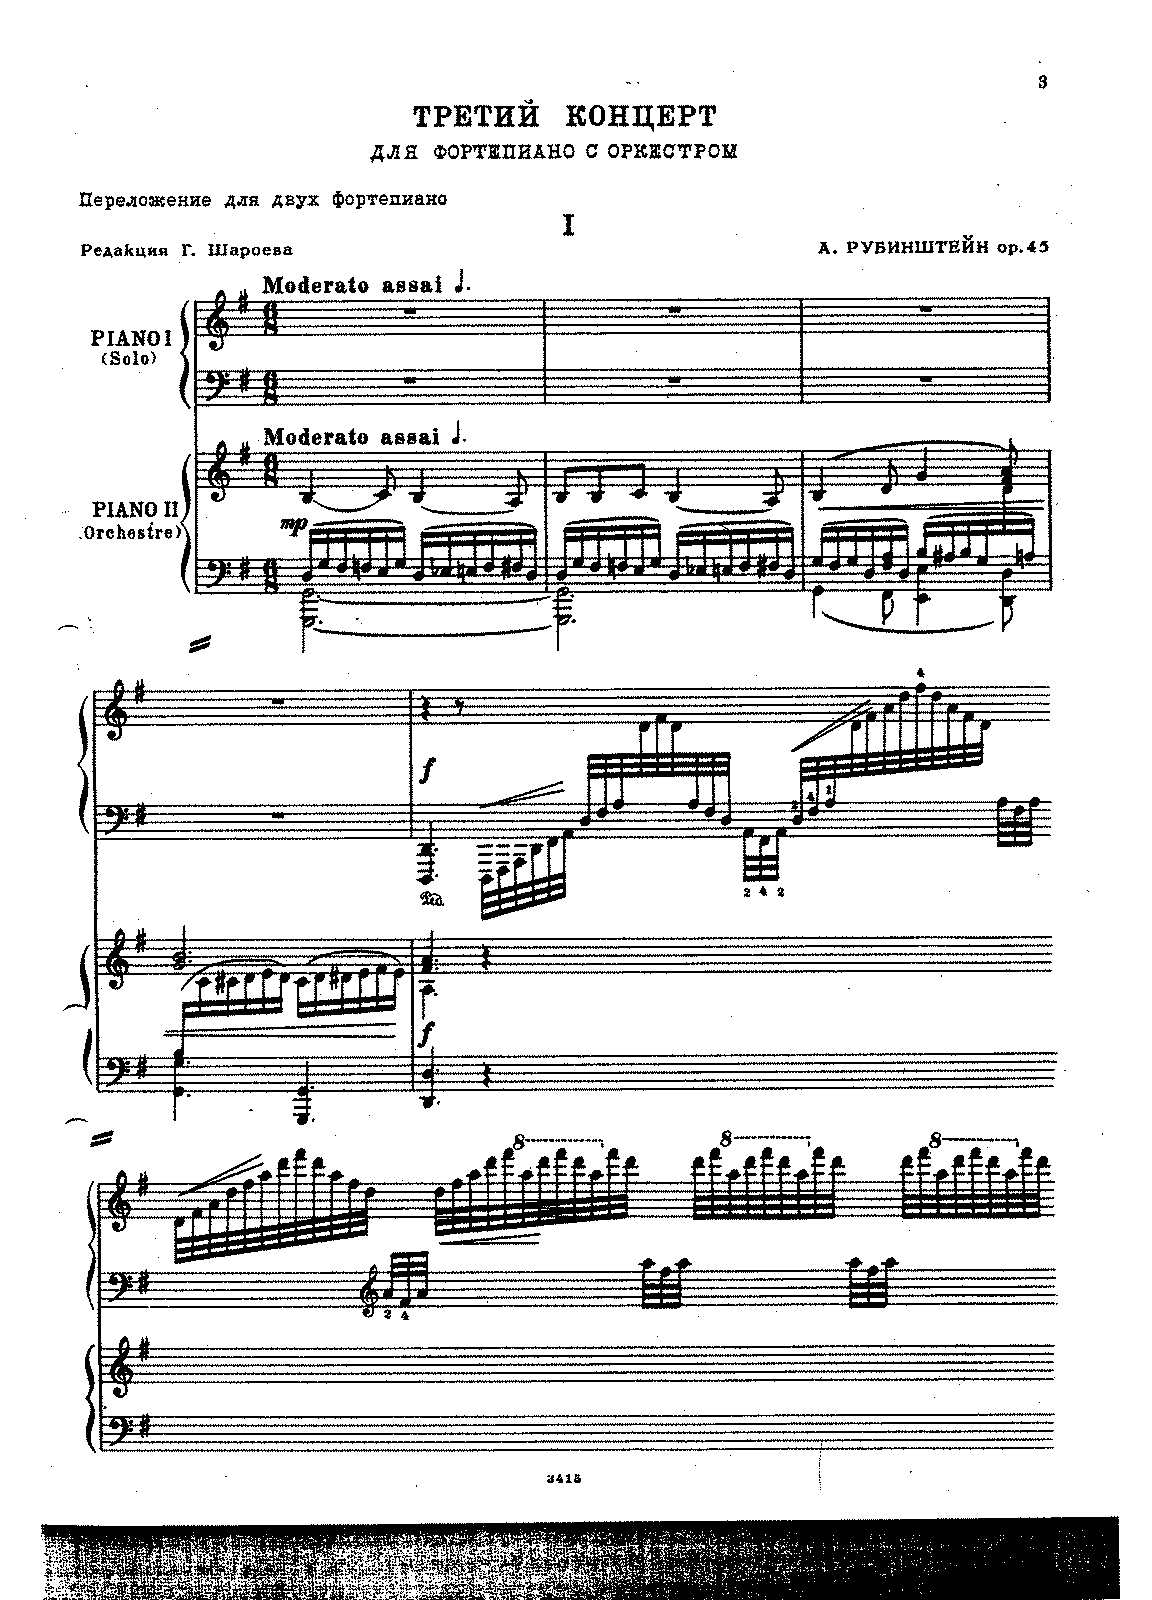 Rubinstein - Op.45 -Piano Concerto No.3 in G Major.pdf